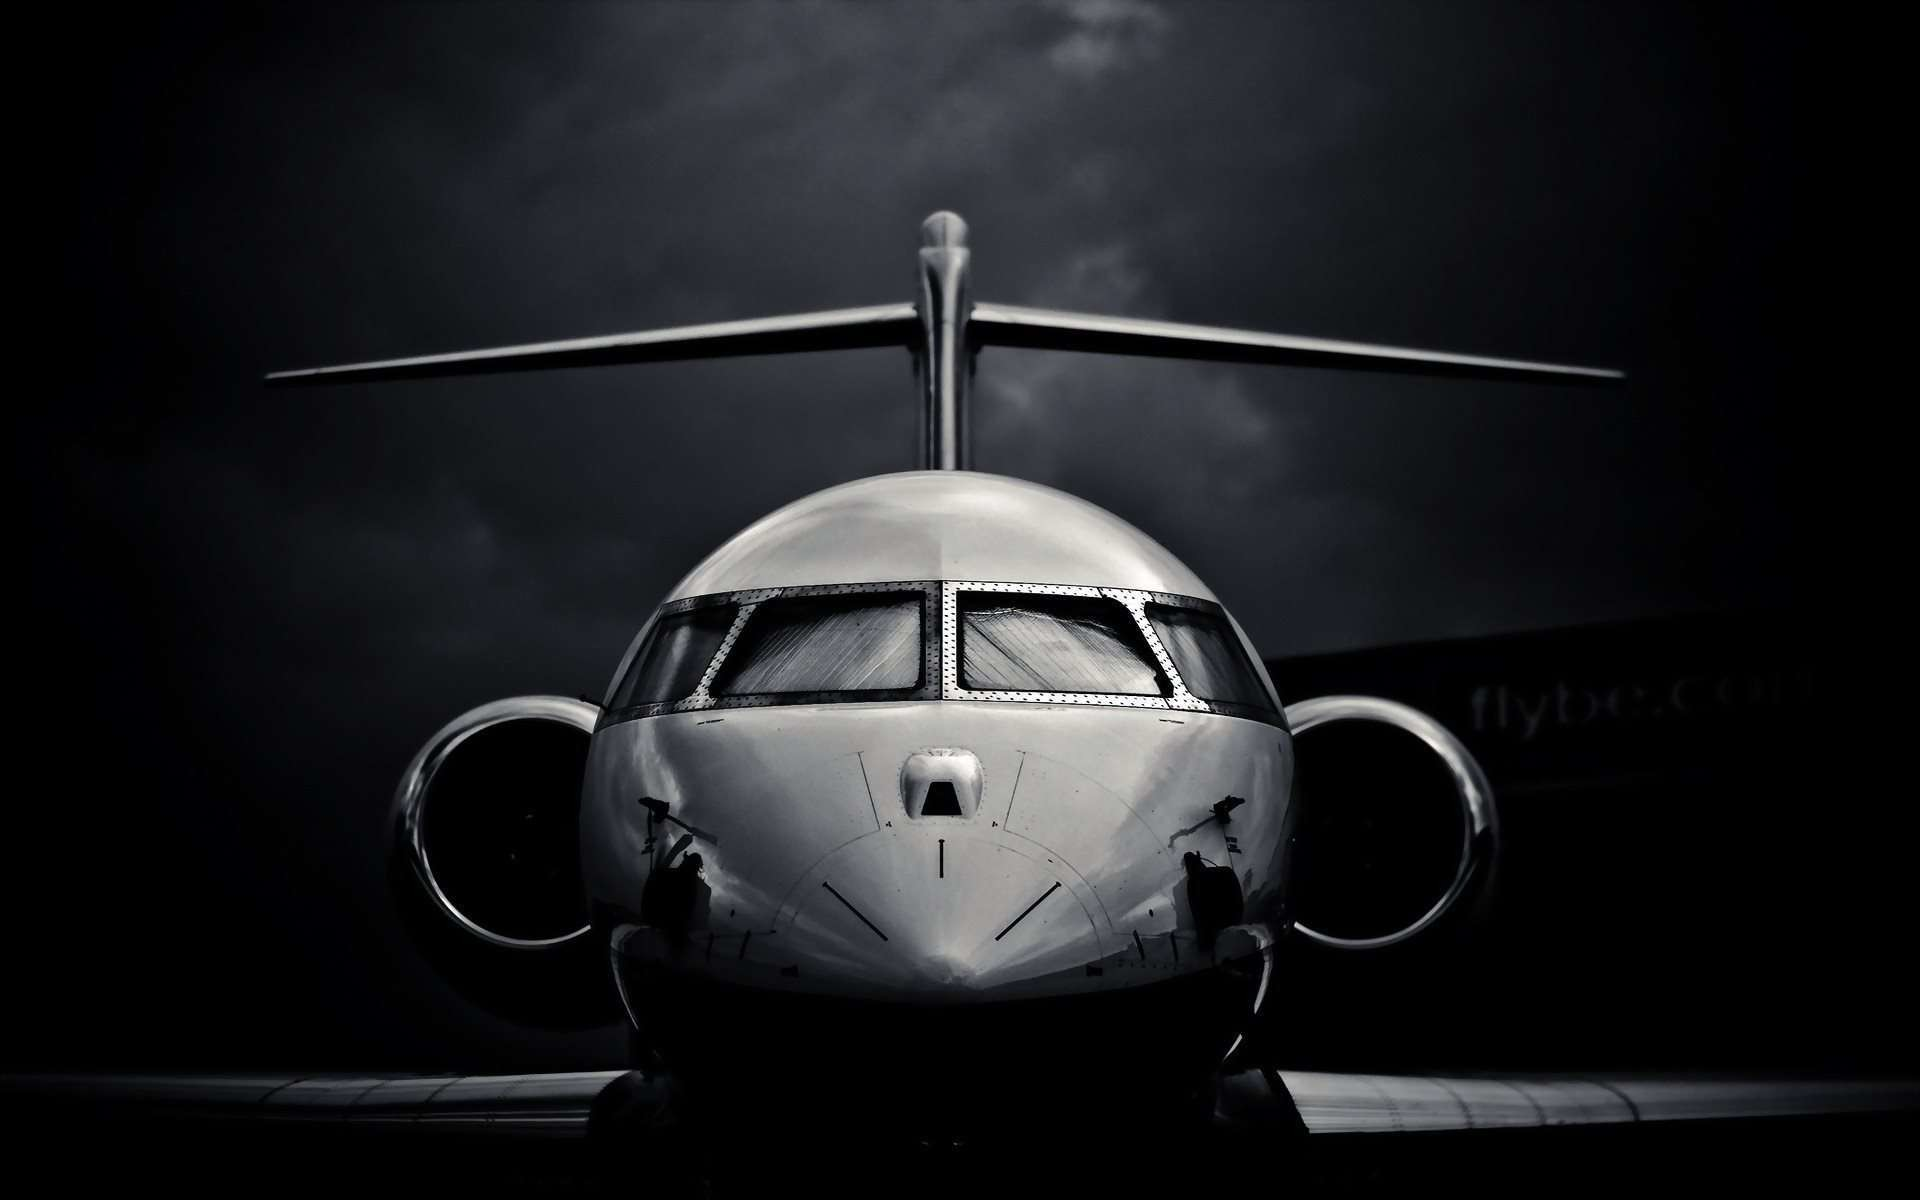 HD Aviation Wallpapers x | HD Wallpapers | Pinterest | Aviation, Wallpaper  and Hd wallpaper